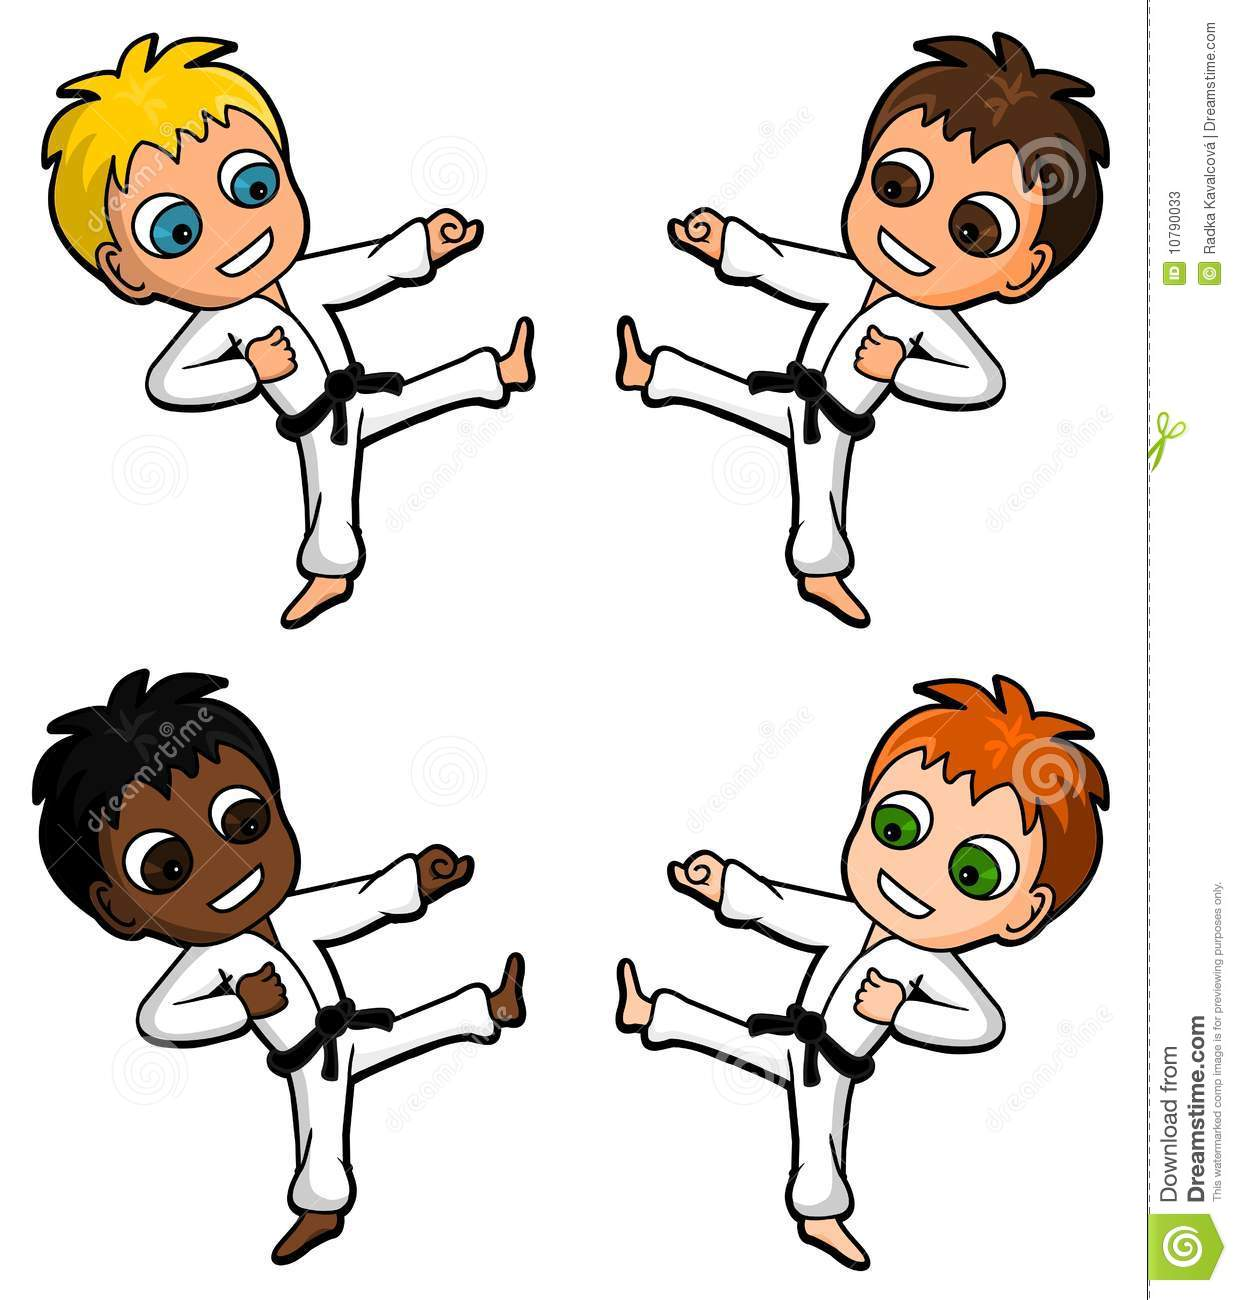 Collection of karate characters of children.